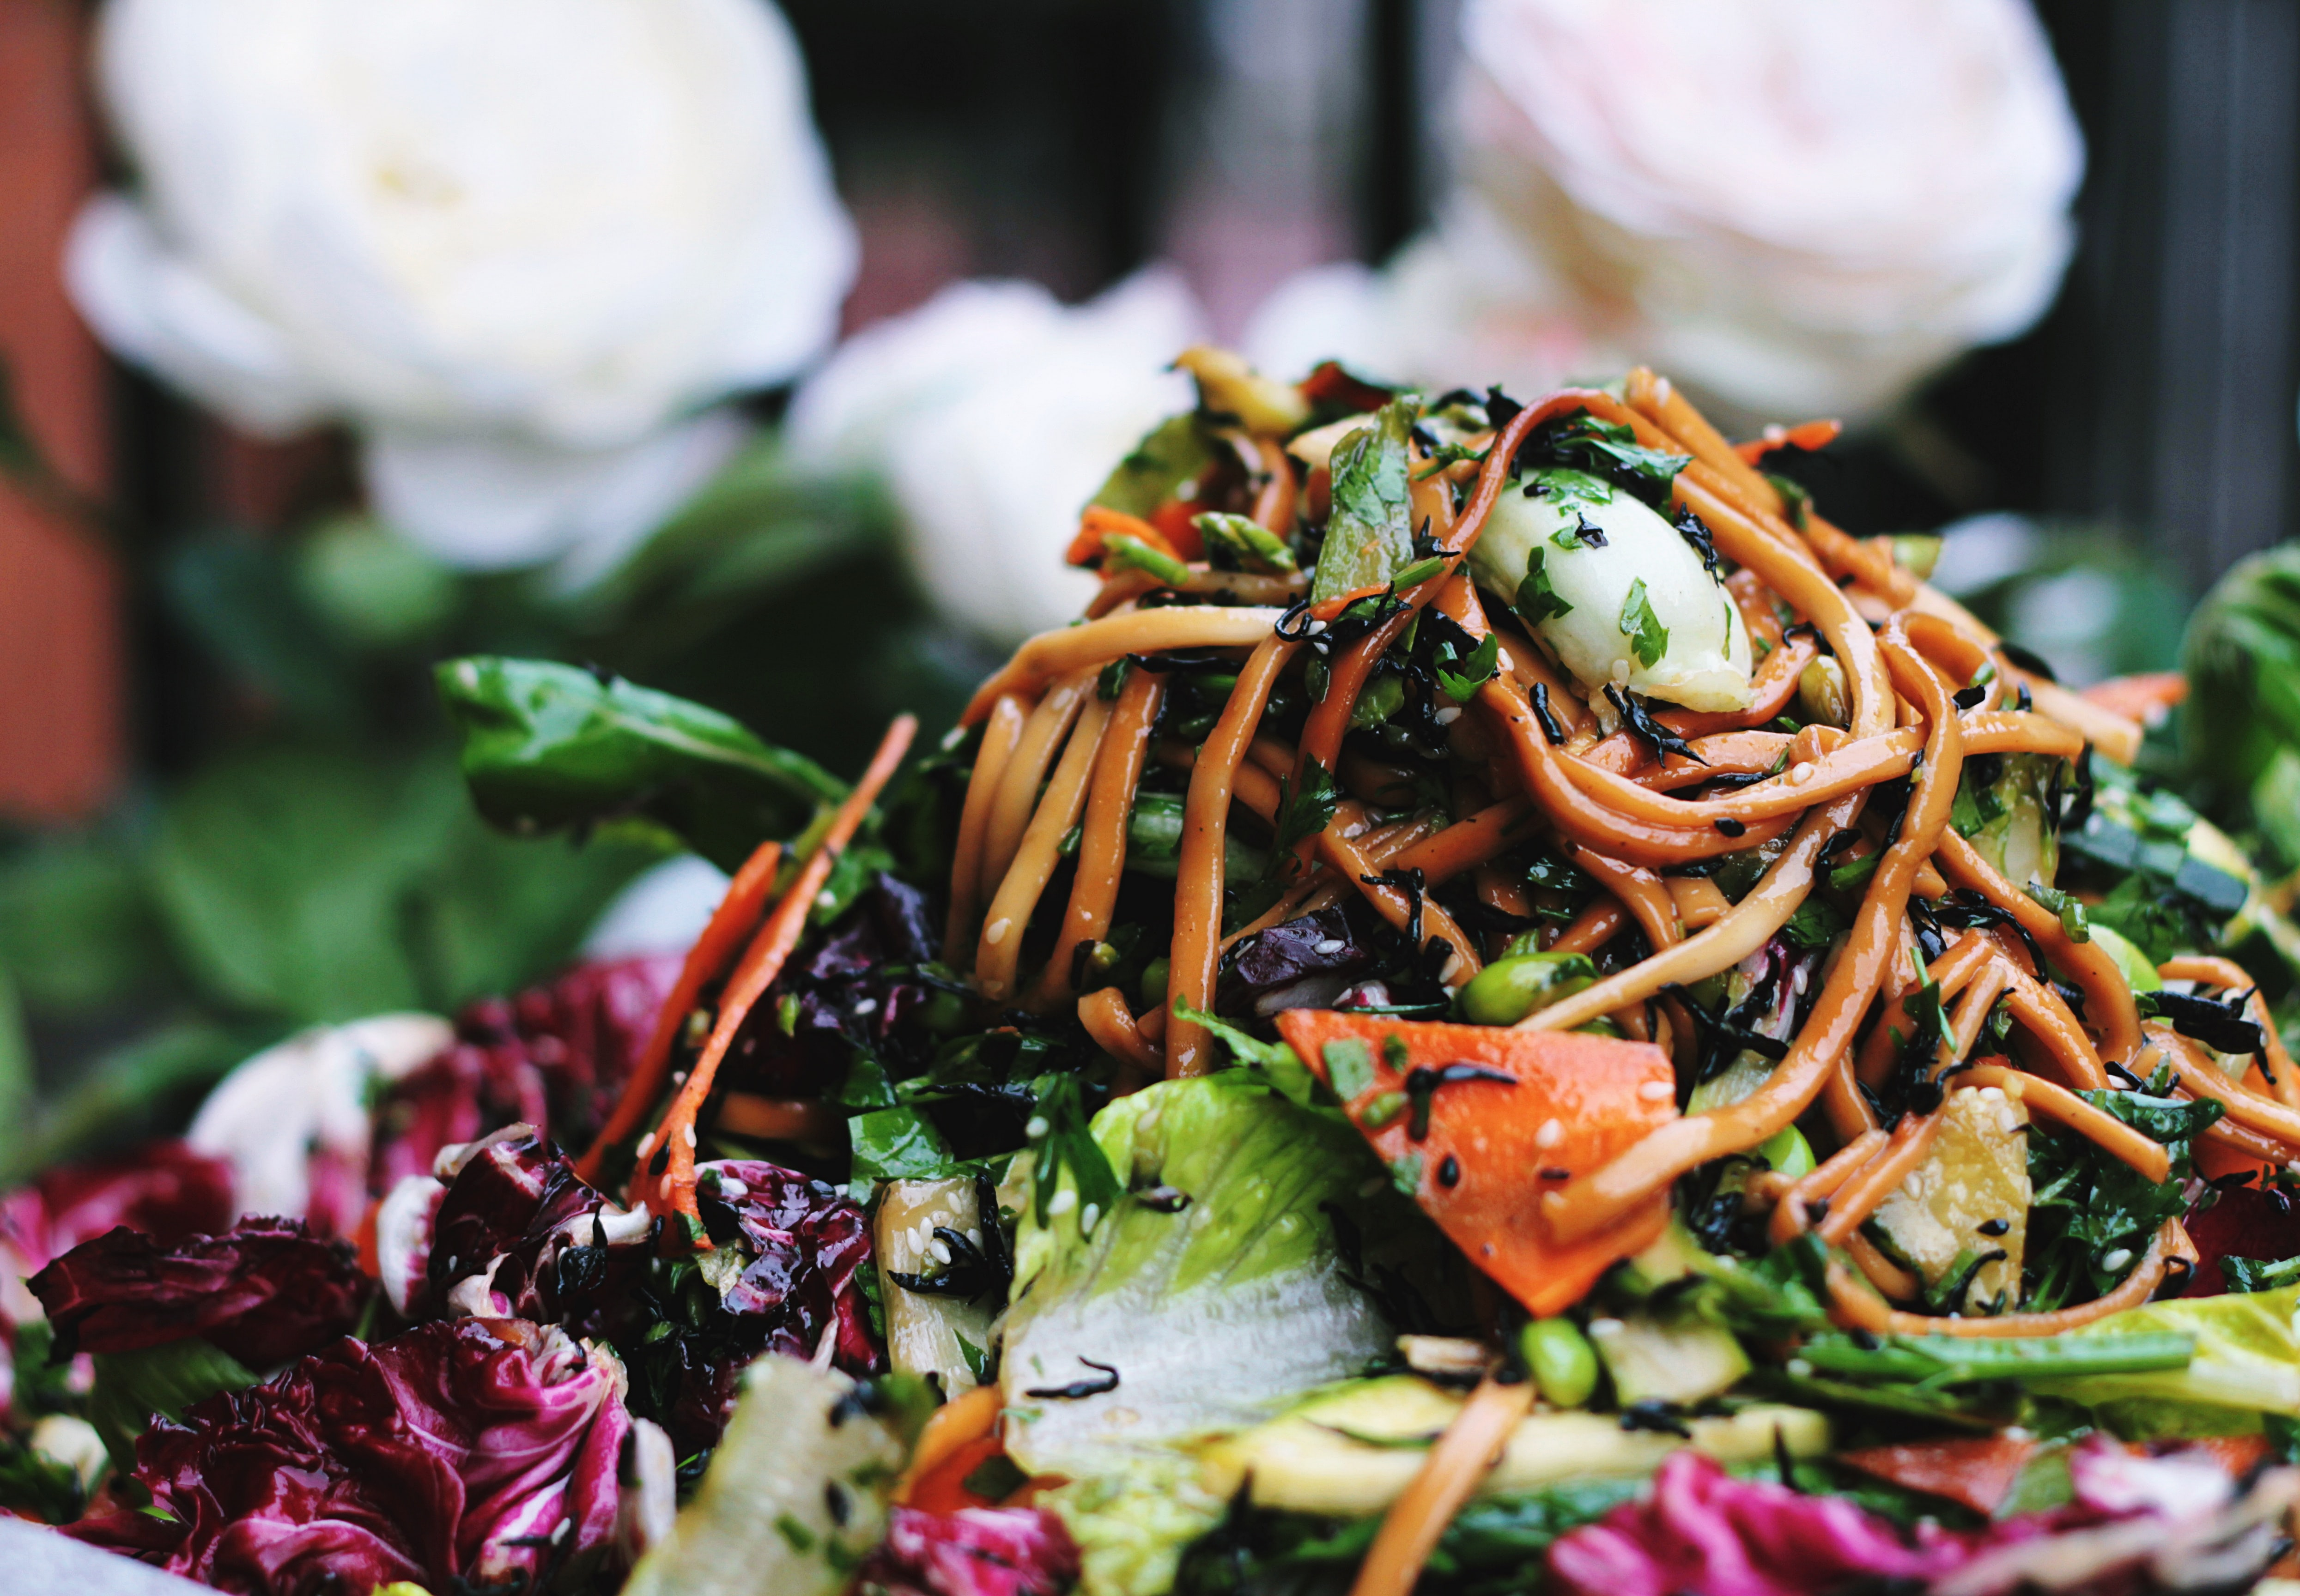 A macro of stir fry noodles with mixed vegetables and leaves